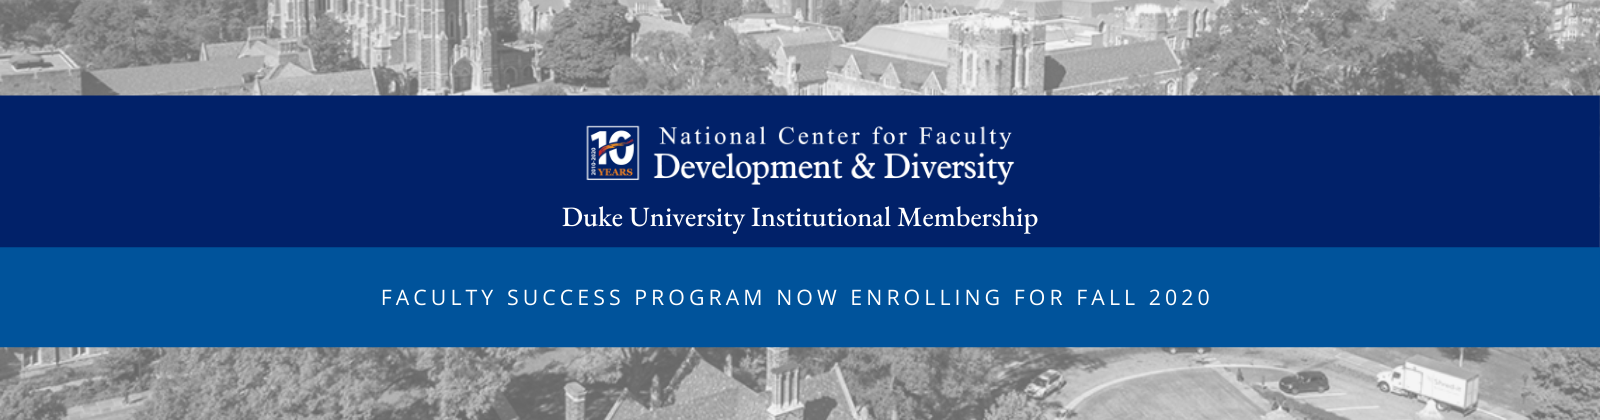 NCFDD Faculty Success Program now enrolling.